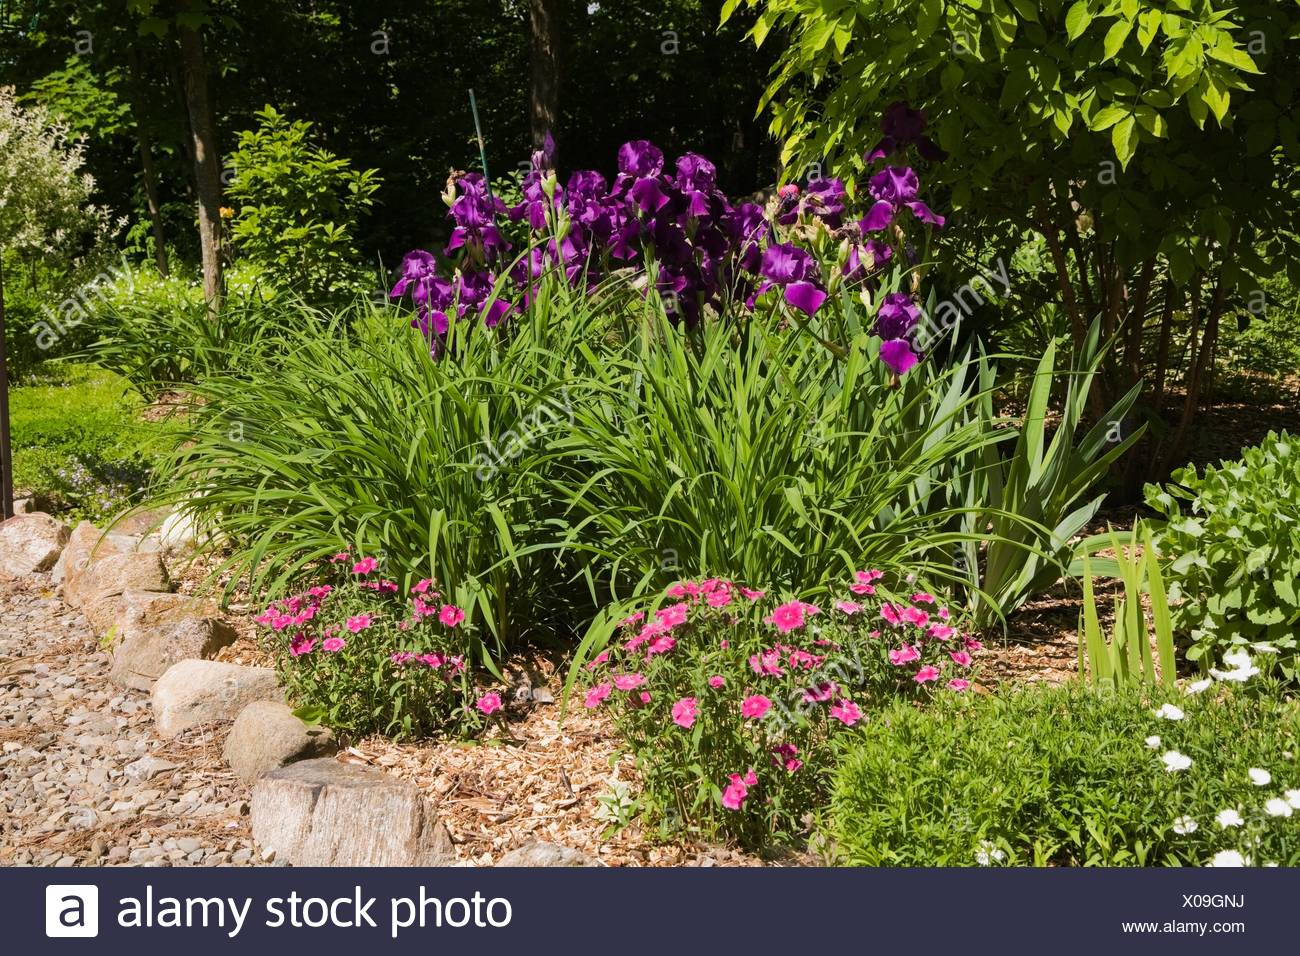 Bordered With Rocks And Purple Iris Flowers In Backyard Garden In